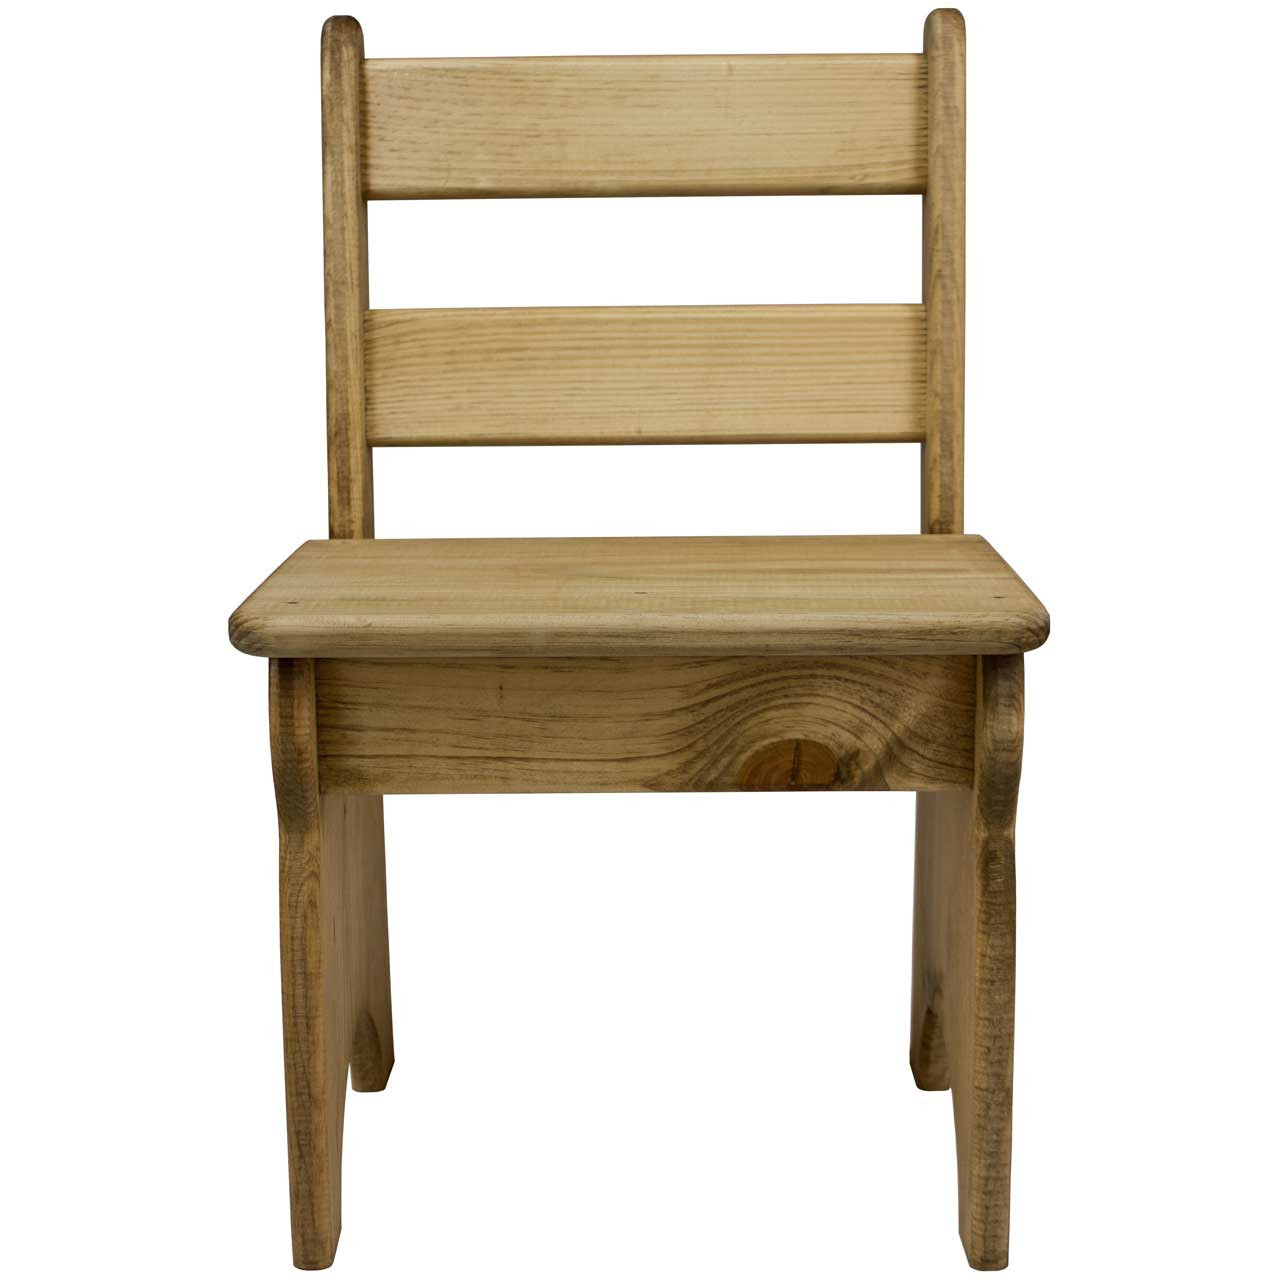 Wooden Toddler Chairs  Small Chairs for Children